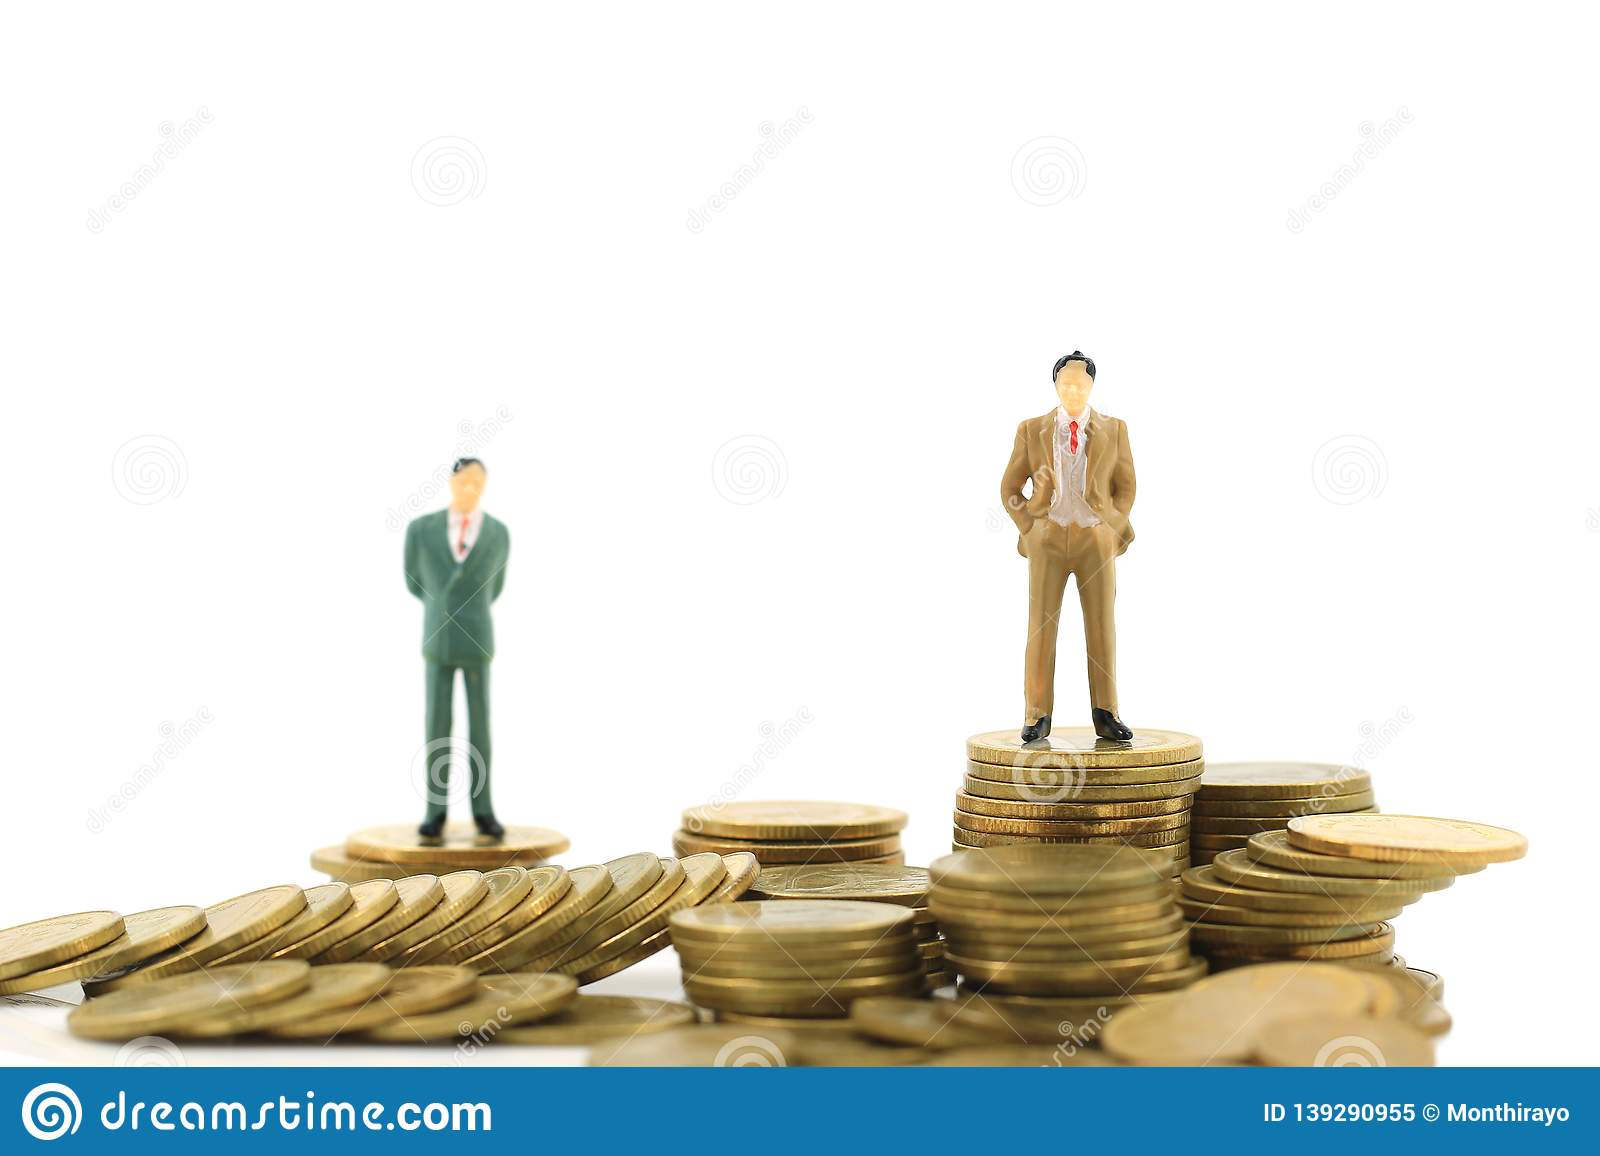 Miniature businessman standing on stack of coins money on white background, investment and business financial concept